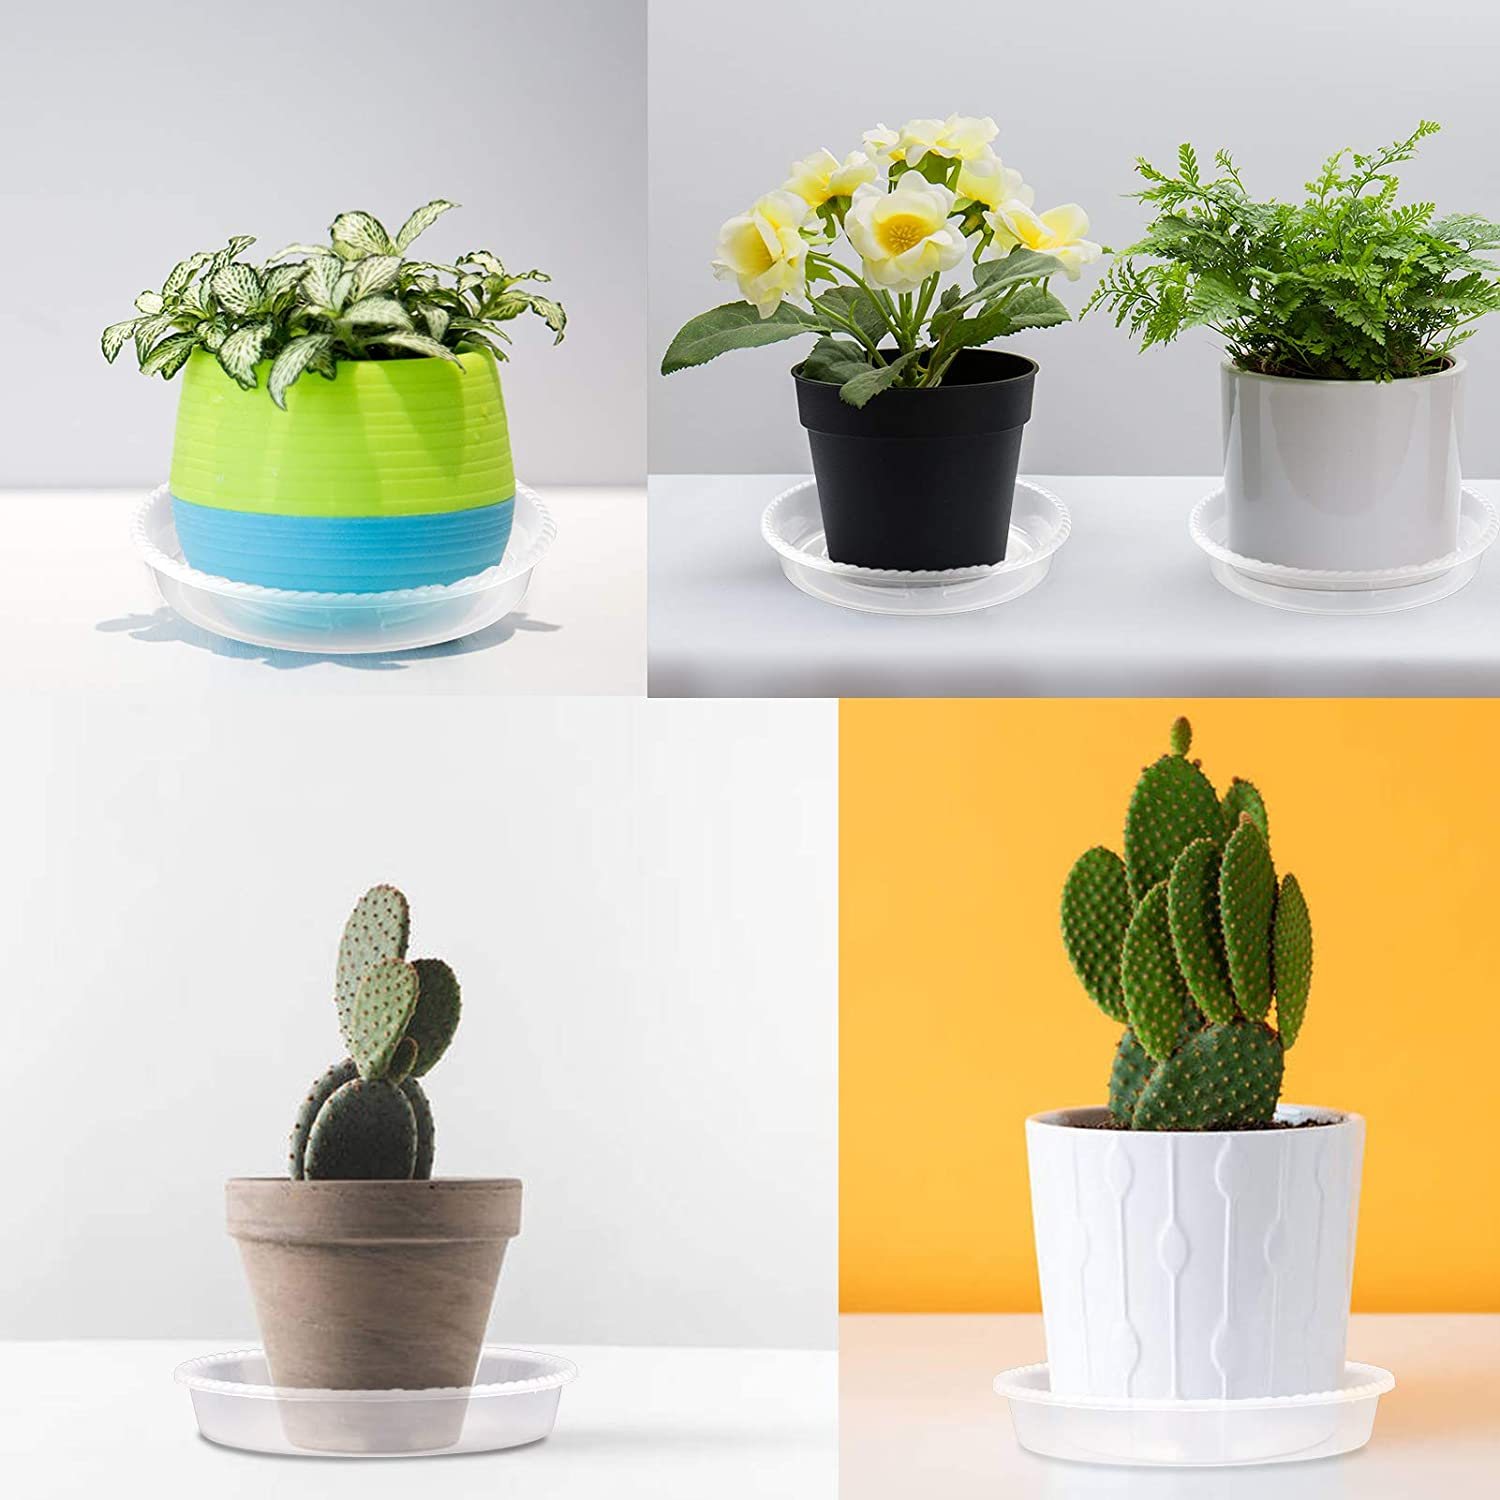 beijifeng Plant Saucer 6 Pack Plastic Tray for Plant Pots 6 Inch Thicker Plant Pot Saucer 6 PCS Waterproof Durable for Outdoor and Indoor Plants Clear